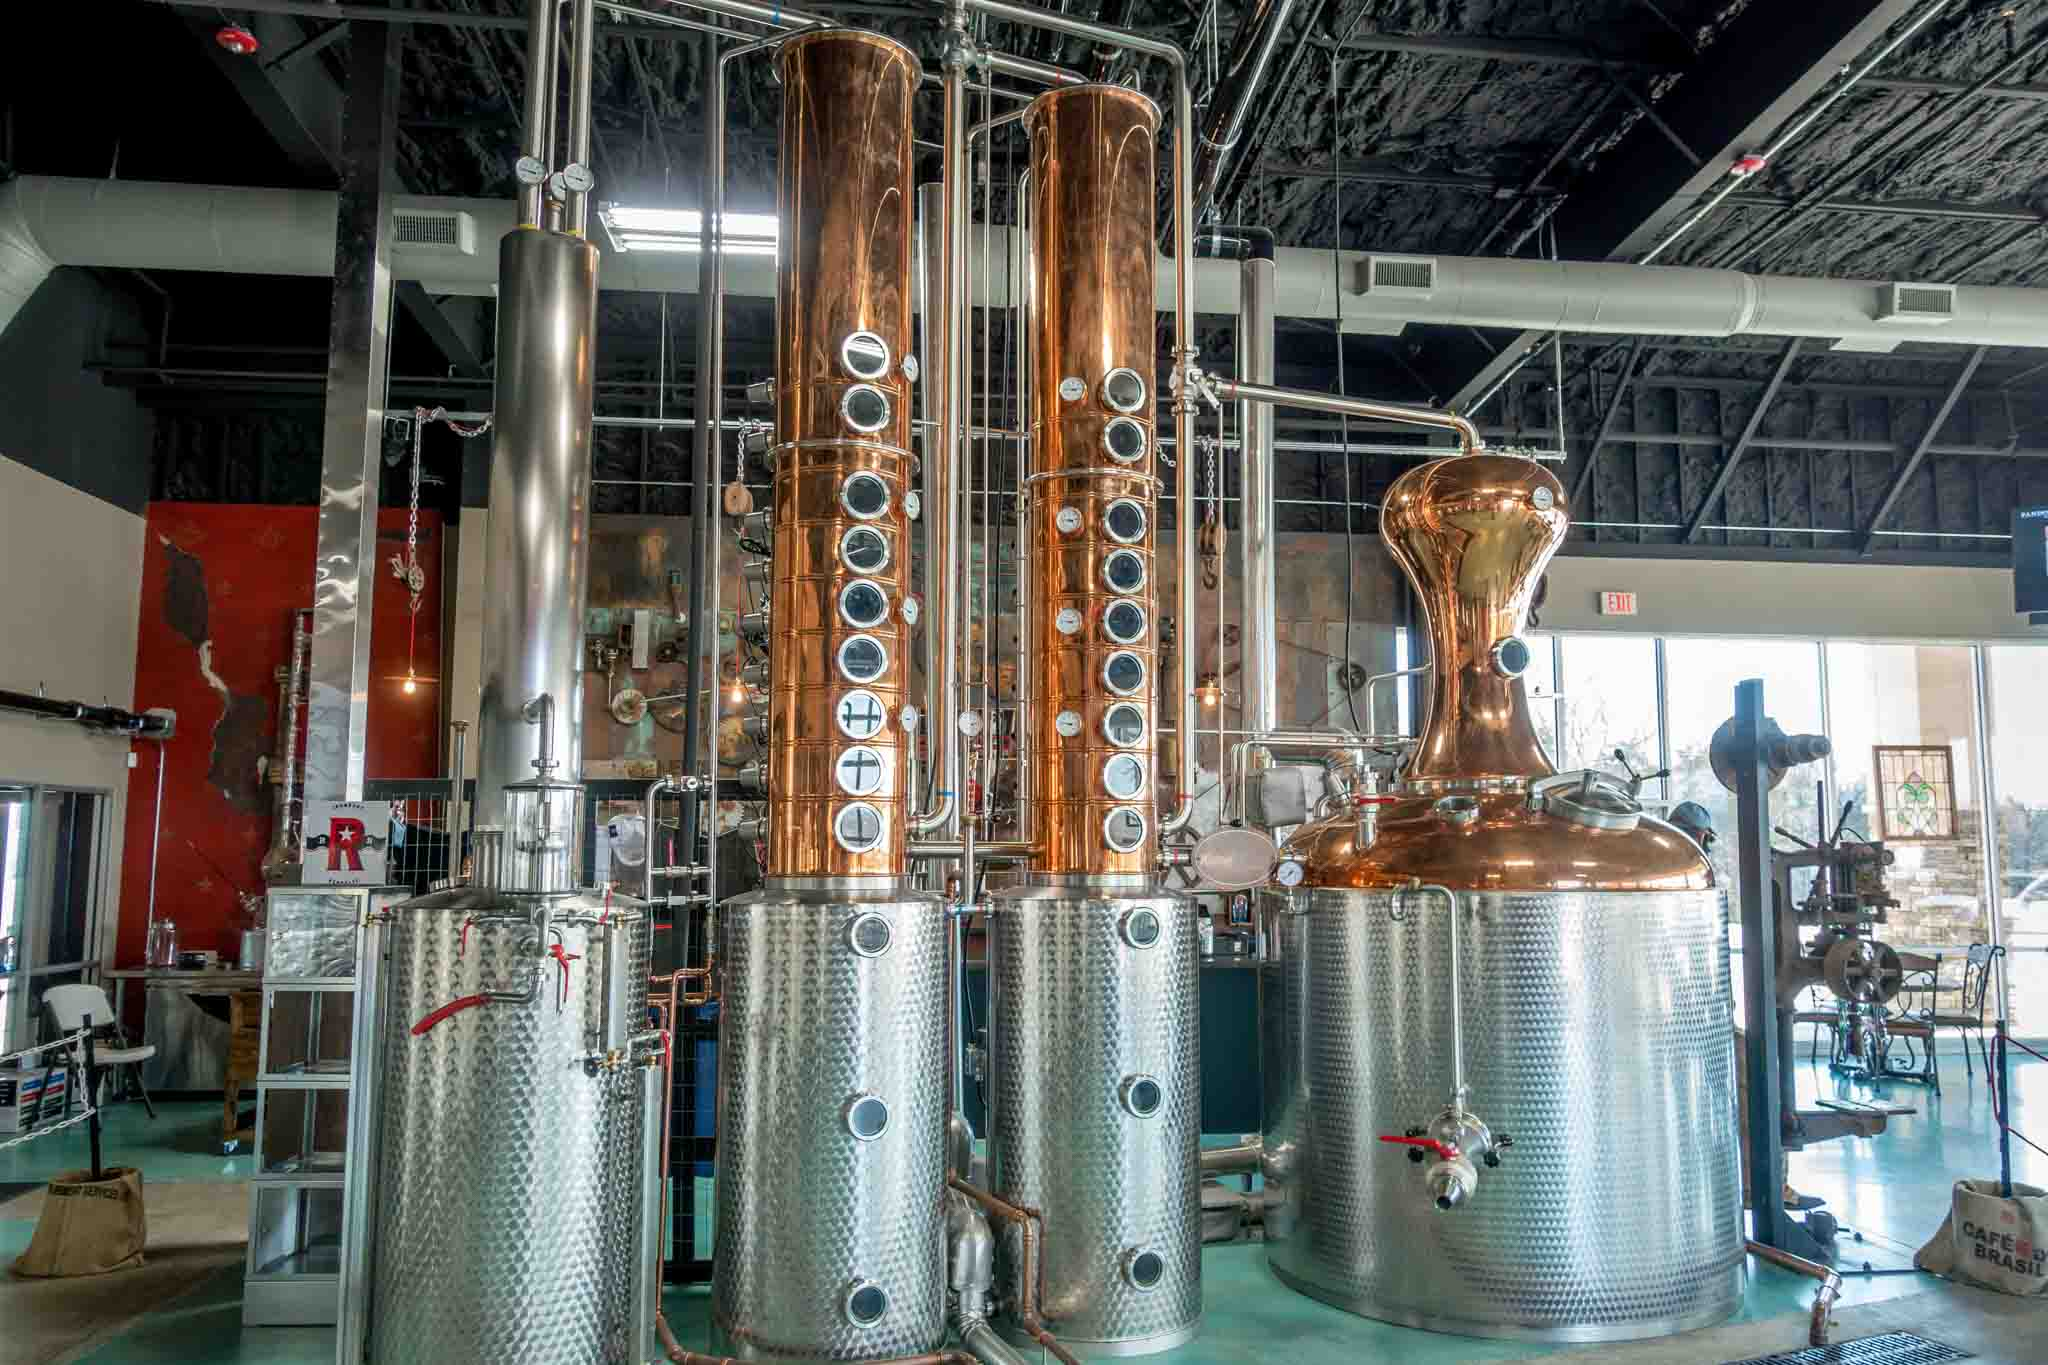 Vodka still at Ironroot Republic, one of the Texas distilleries